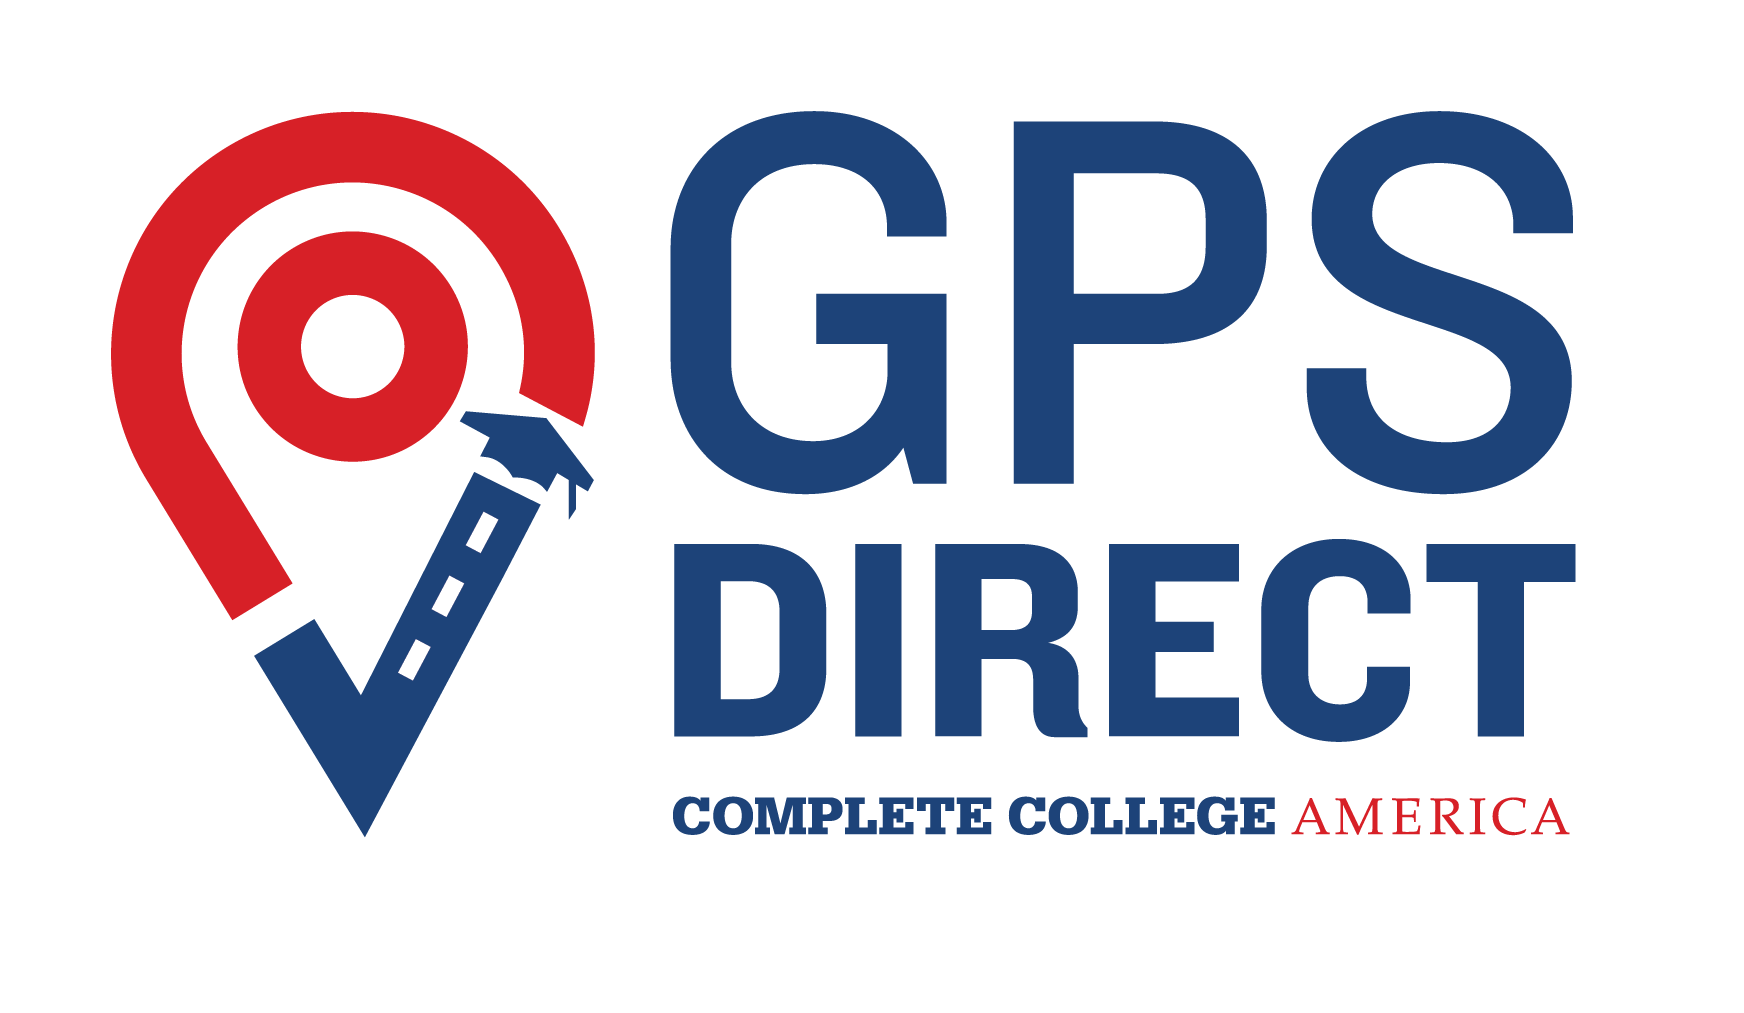 Evidence stamp png. Complete college america launches